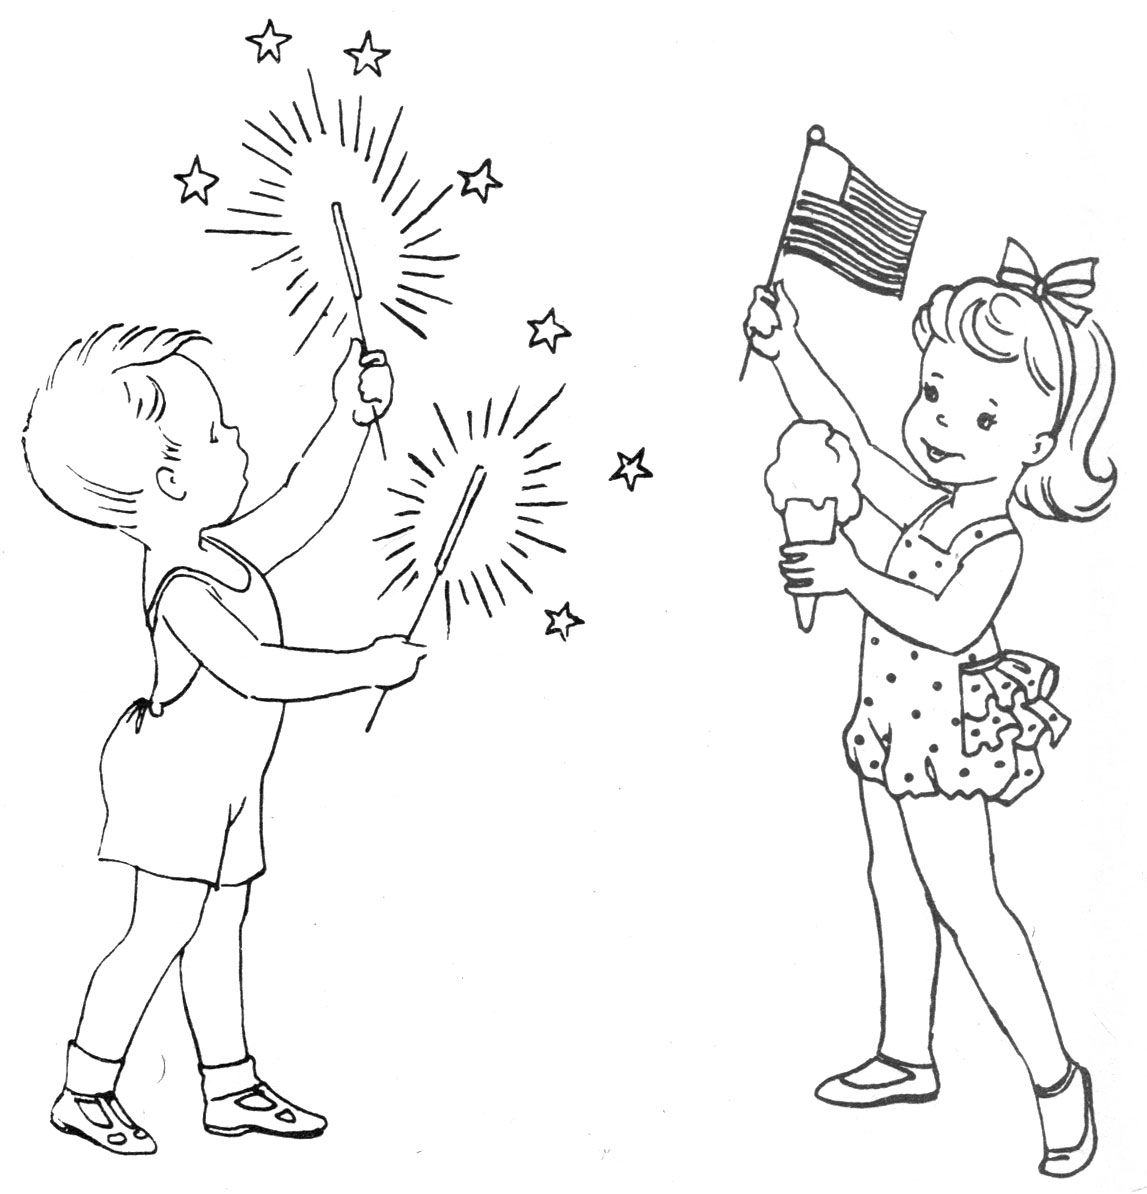 Vintage Patterns Coloring Pages. Vintage of July Pattern  D Perfectly Patriotic for an apron hand towels or embroidery hoop art 4th Embroidery Transfers Needlework